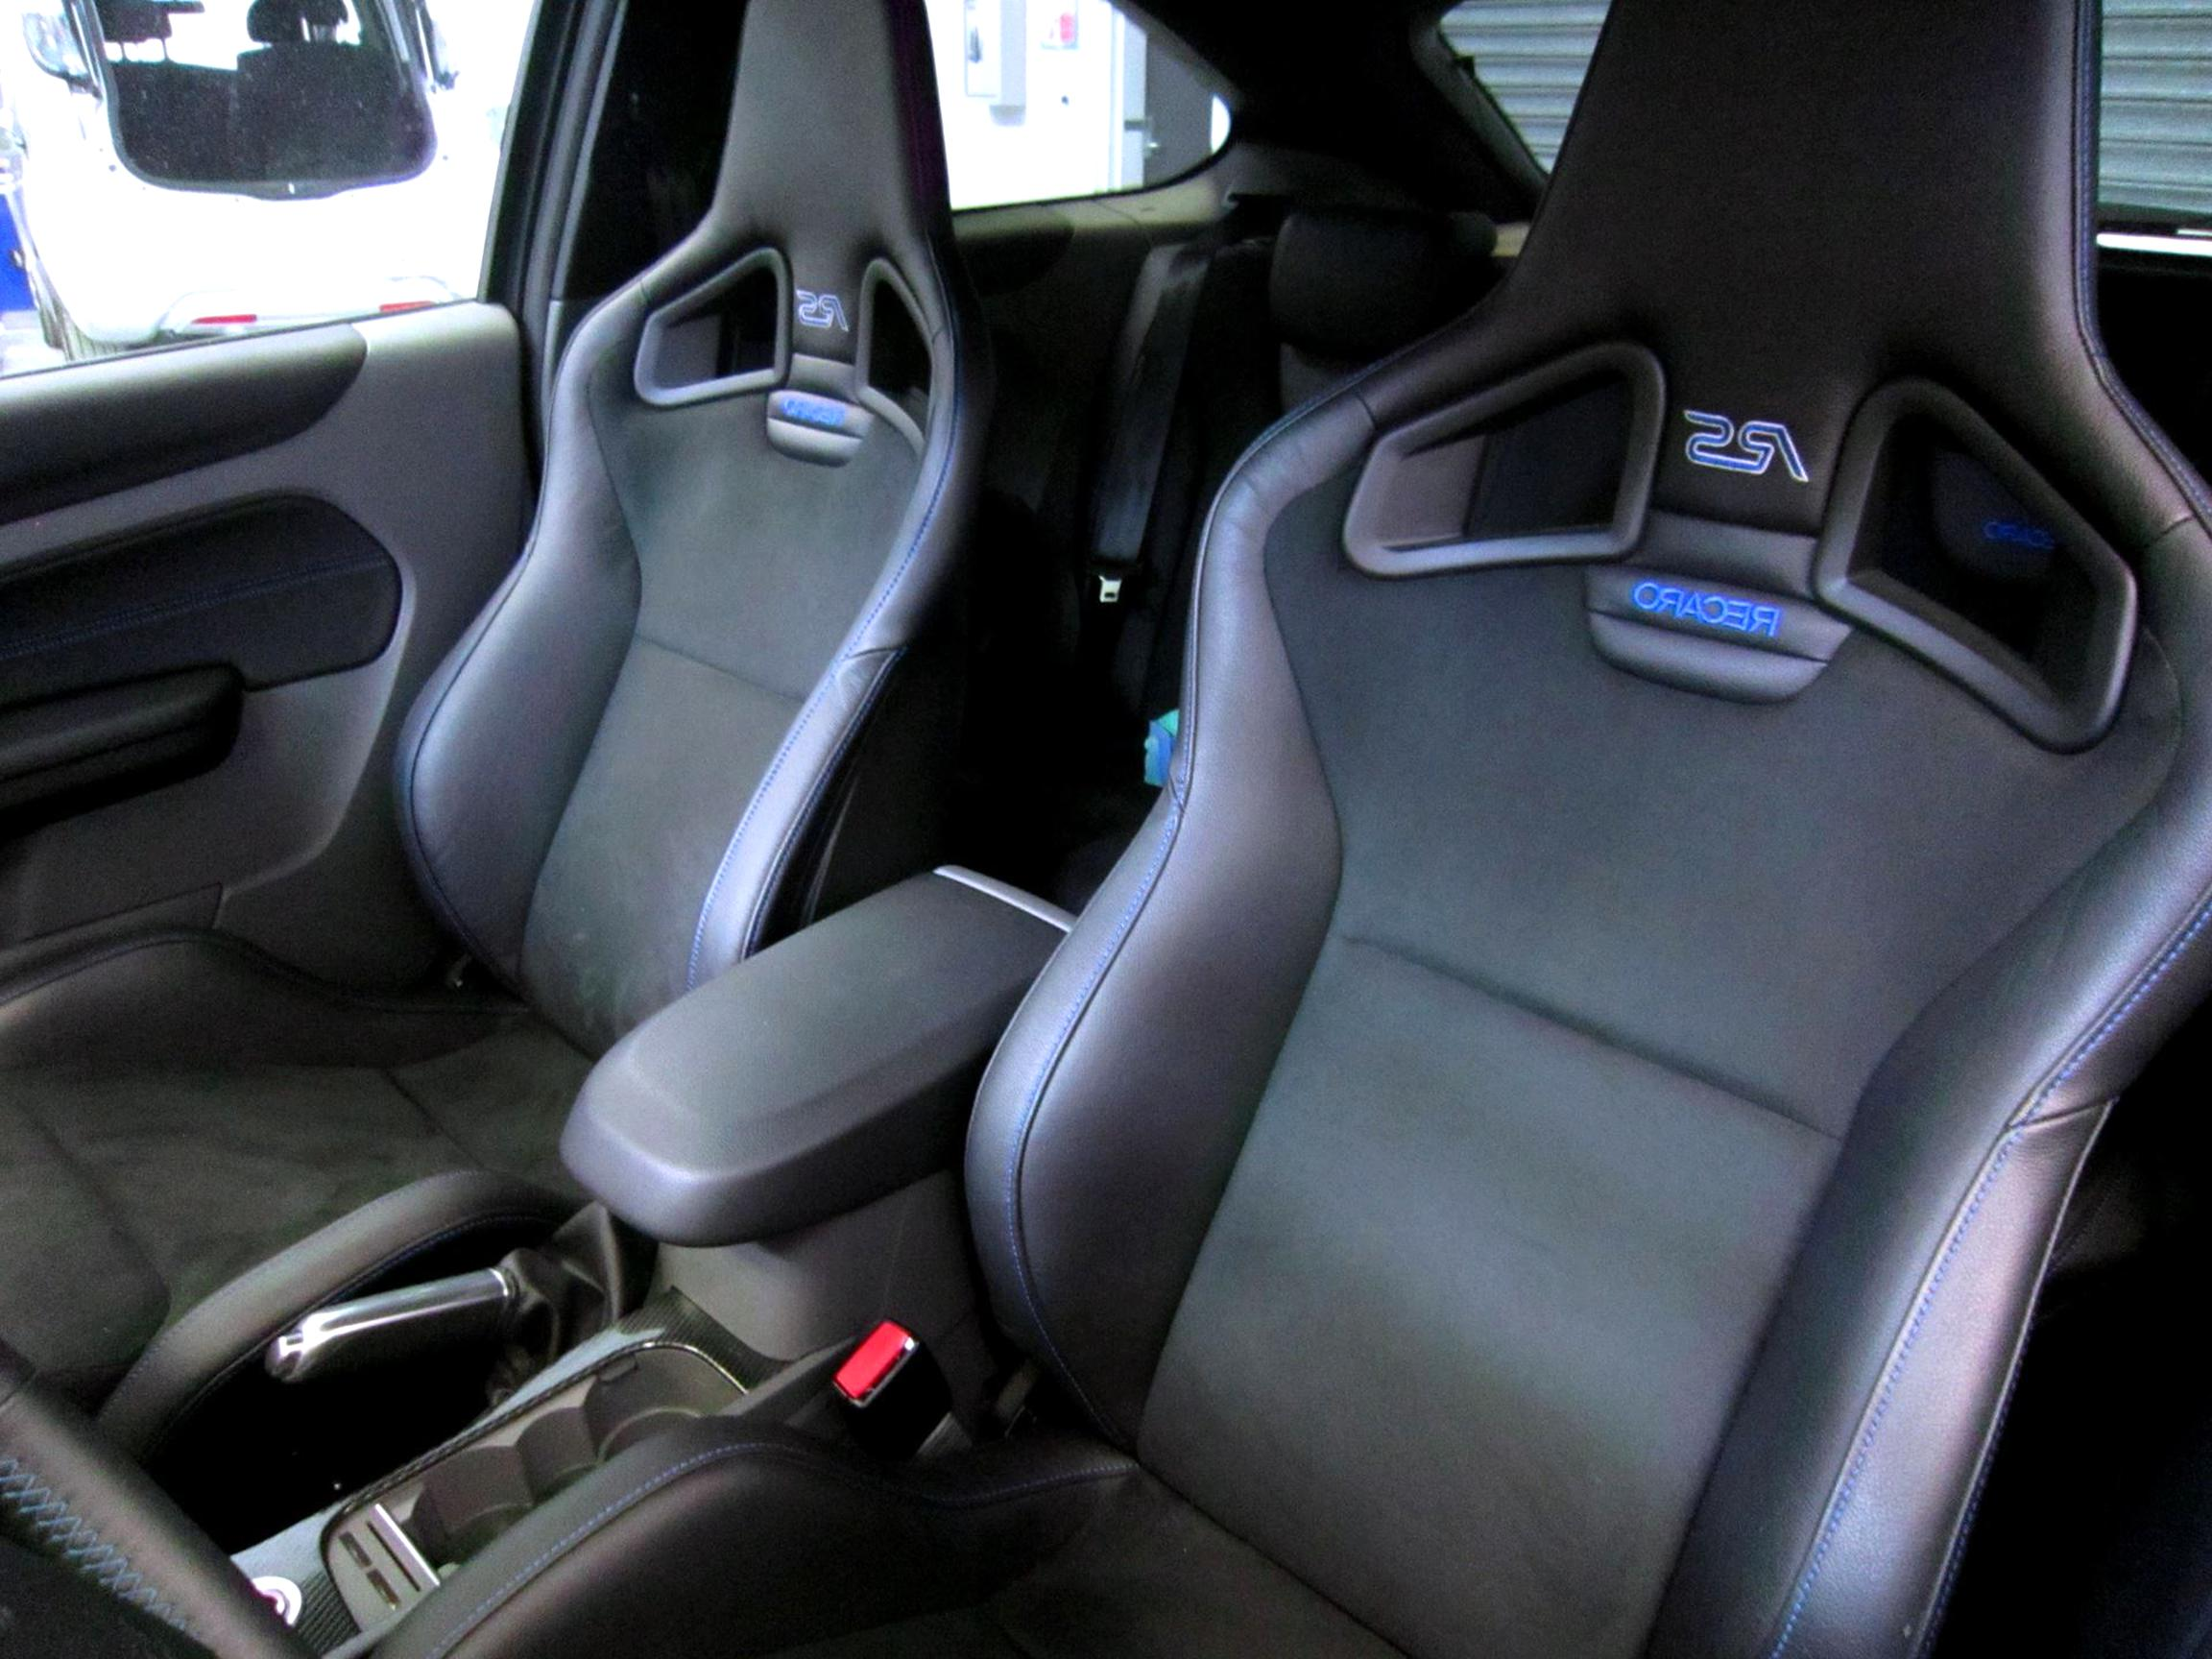 Focus Rs Seats For Sale In Uk 60 Used Focus Rs Seats